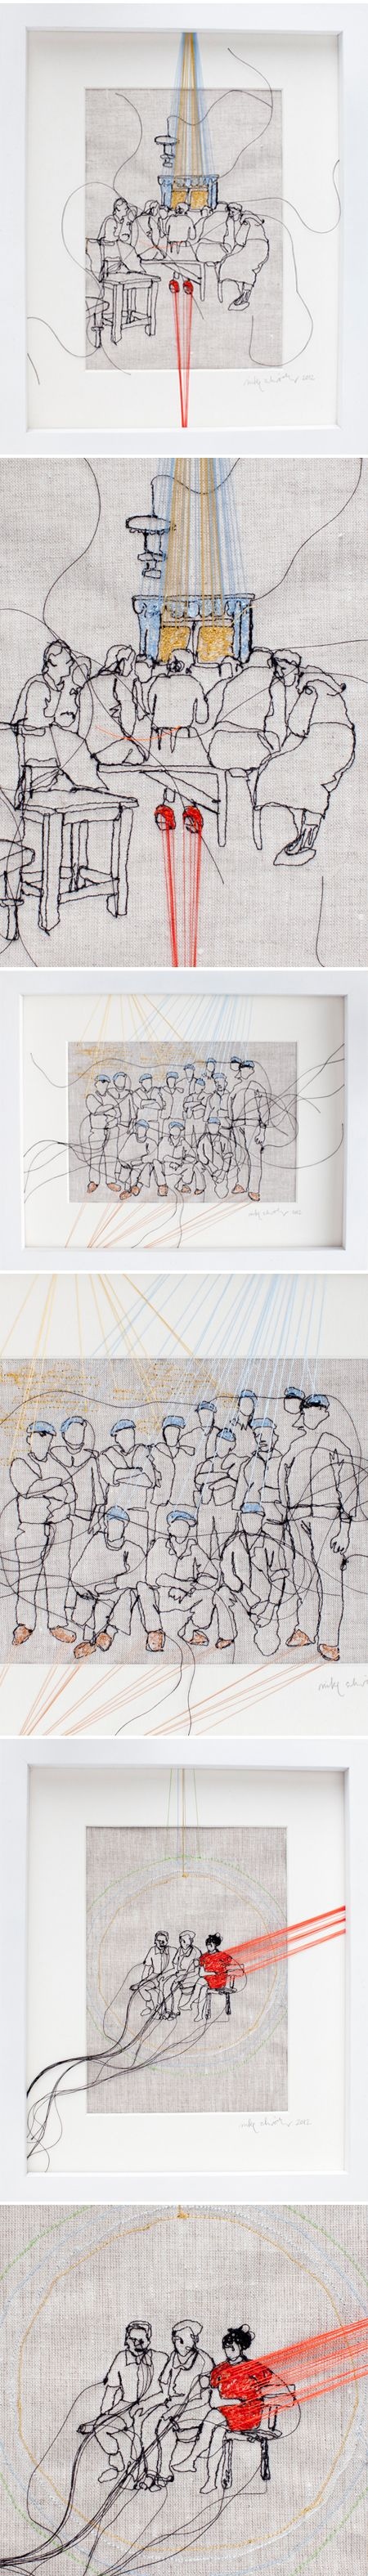 Amazing embroidery art by Nike Schroeder>The Jealous Curator.  REALLY COOL IDEA